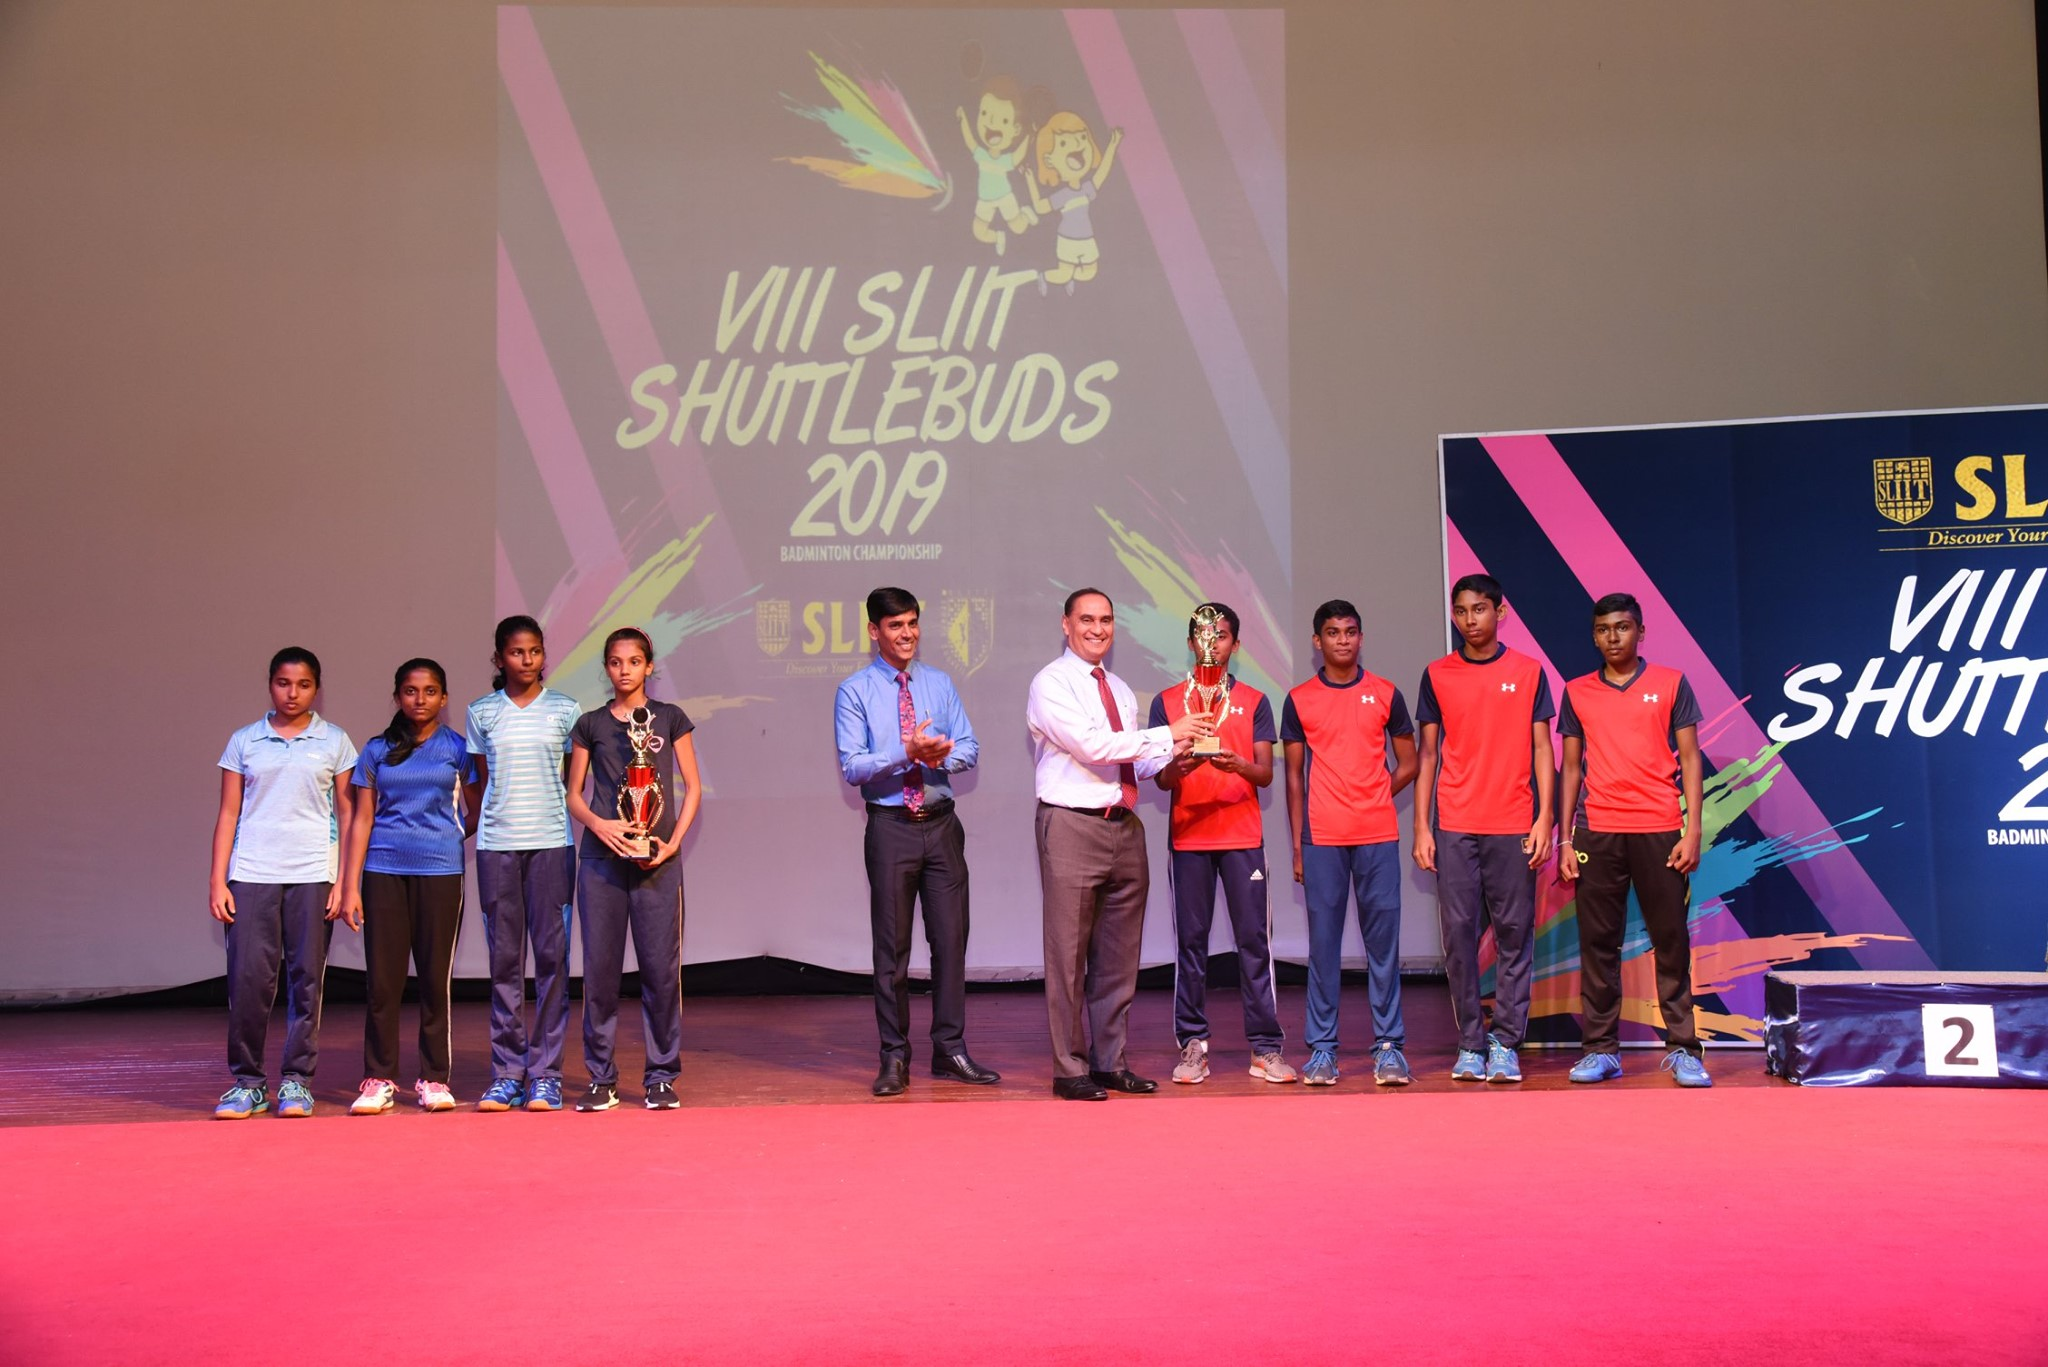 8th-Shuttle-Buds-all-island-Badminton-Championship-